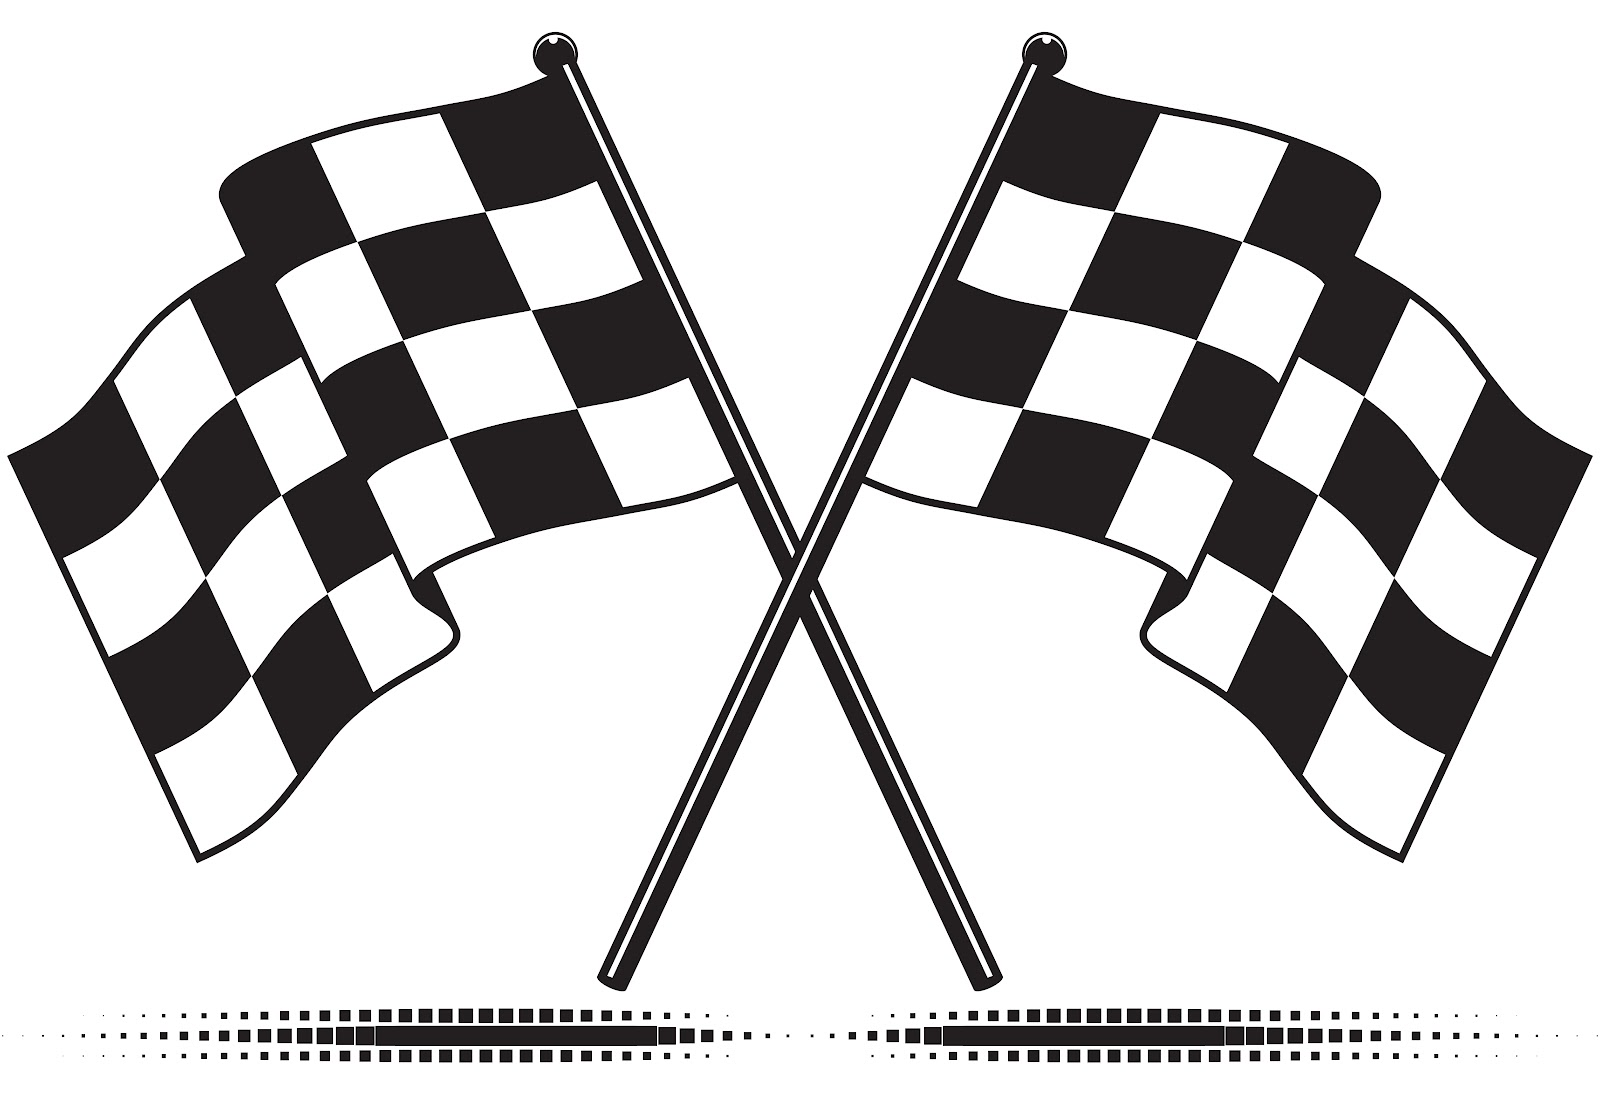 Printable Checkered Flag Clipart likewise 302014067631 furthermore Racing Flag Folds Stock Photo 19822003 additionally Free Clipart Nascar Cars furthermore Nascar Race Car Clip Art. on nascar checkered flag